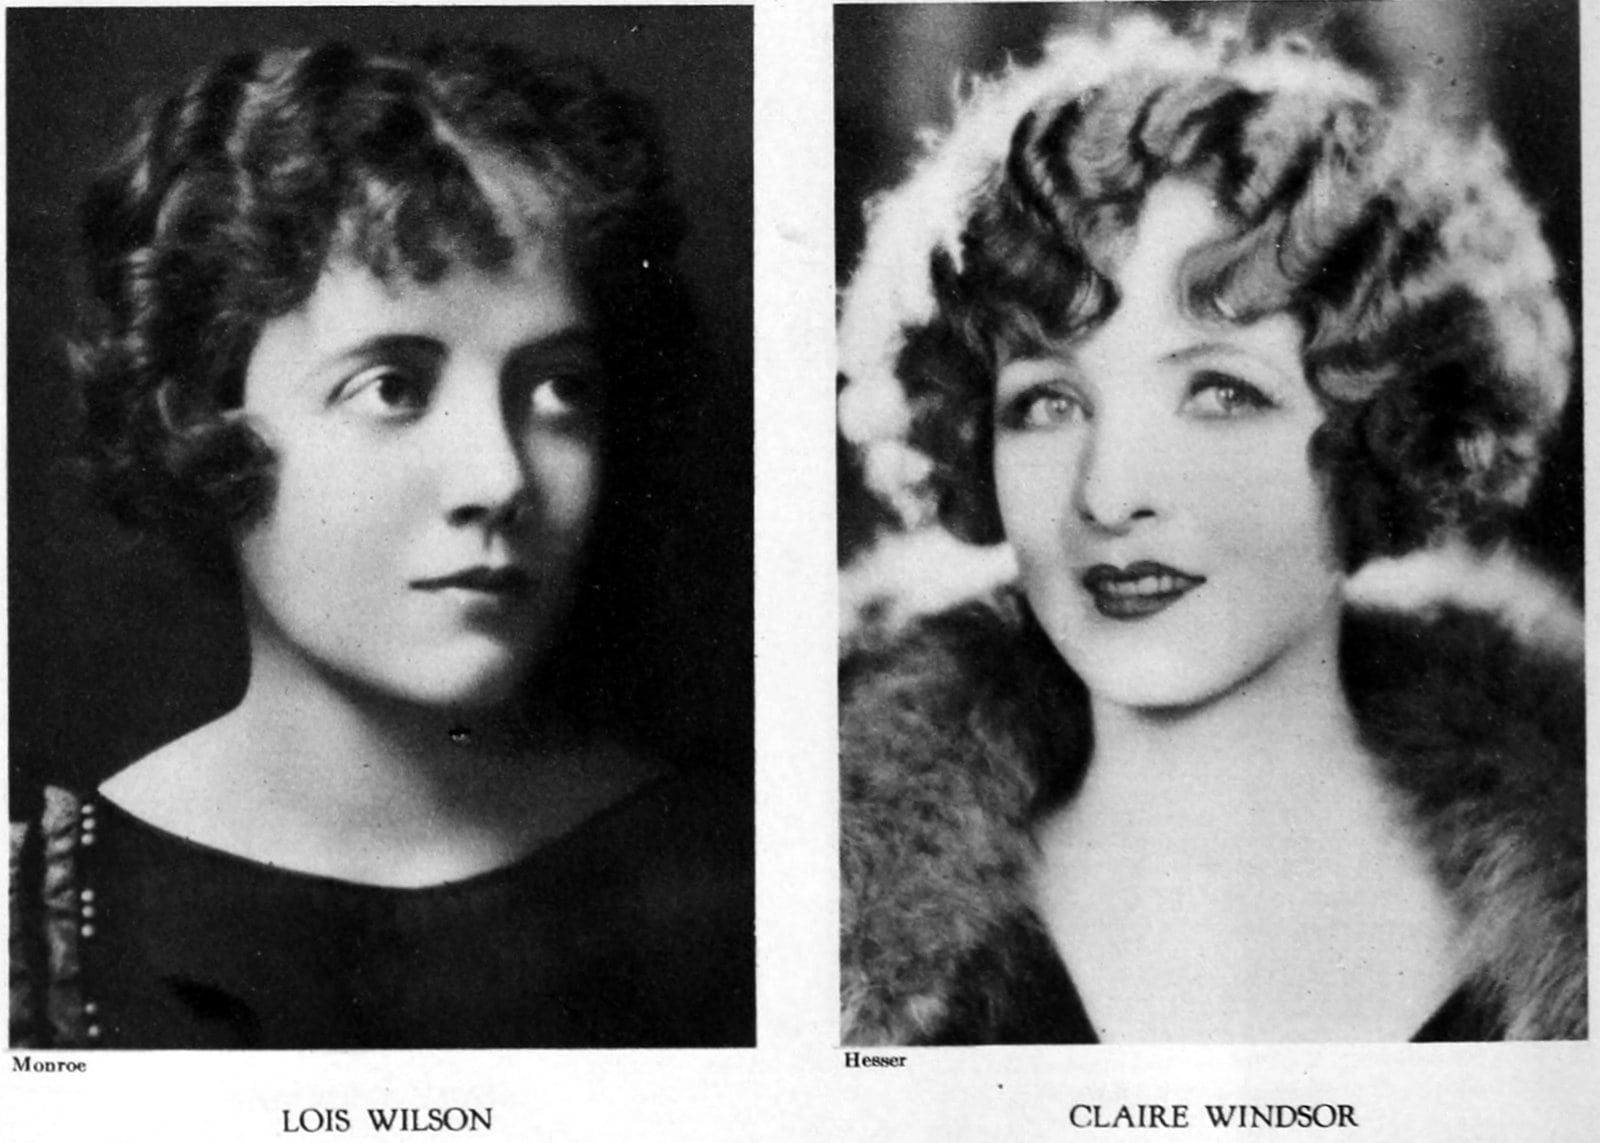 Vintage 1920s hairstyles on actresses Lois Wilson and Claire Windsor